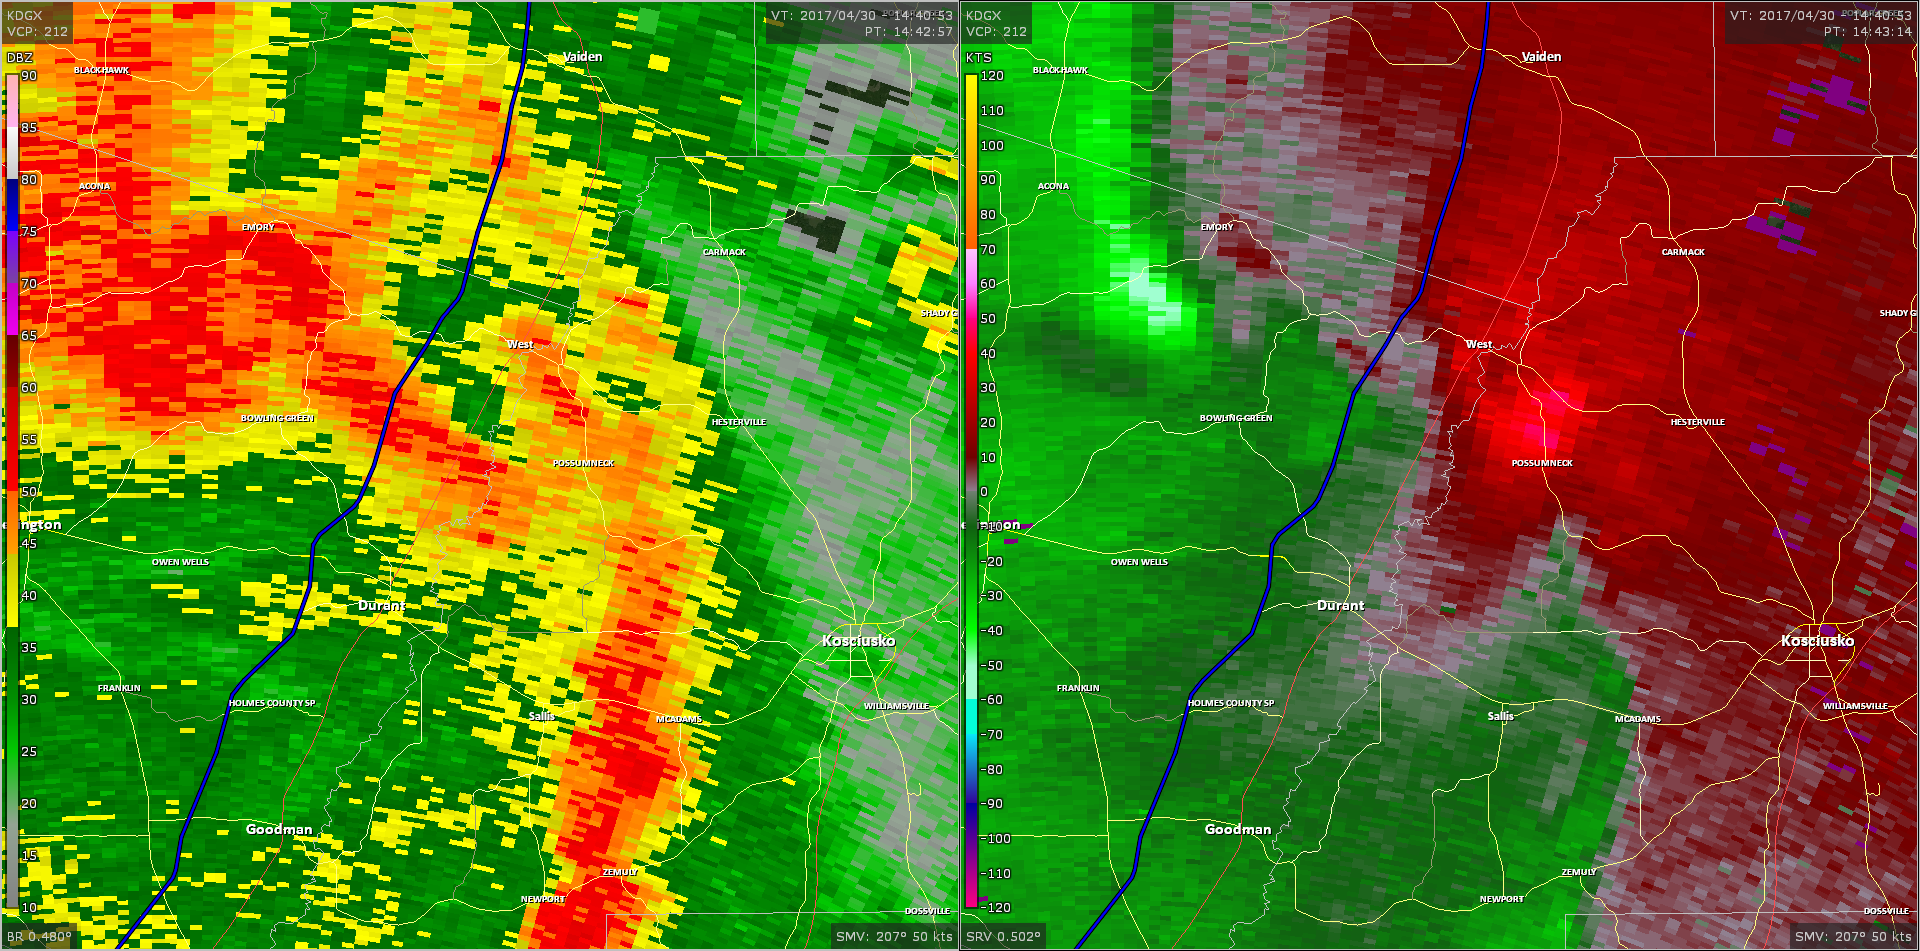 Radar - Northeast Holmes County Tornado